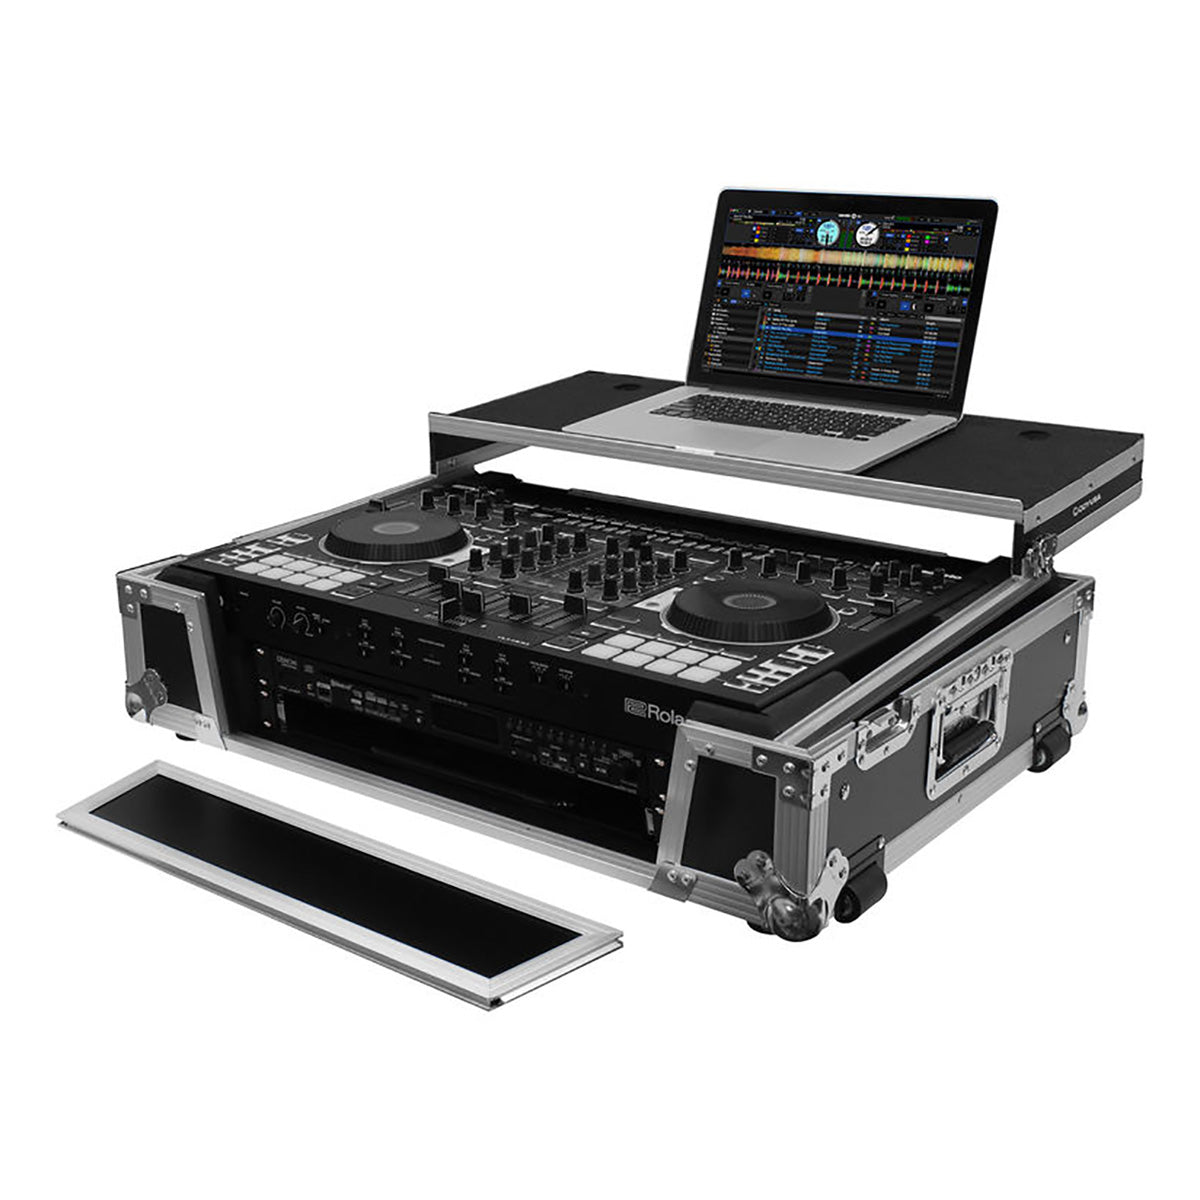 Odyssey: Flight Zone Case for Roland DJ-808 / Denon MC7000 (FZGSDJ808W2)